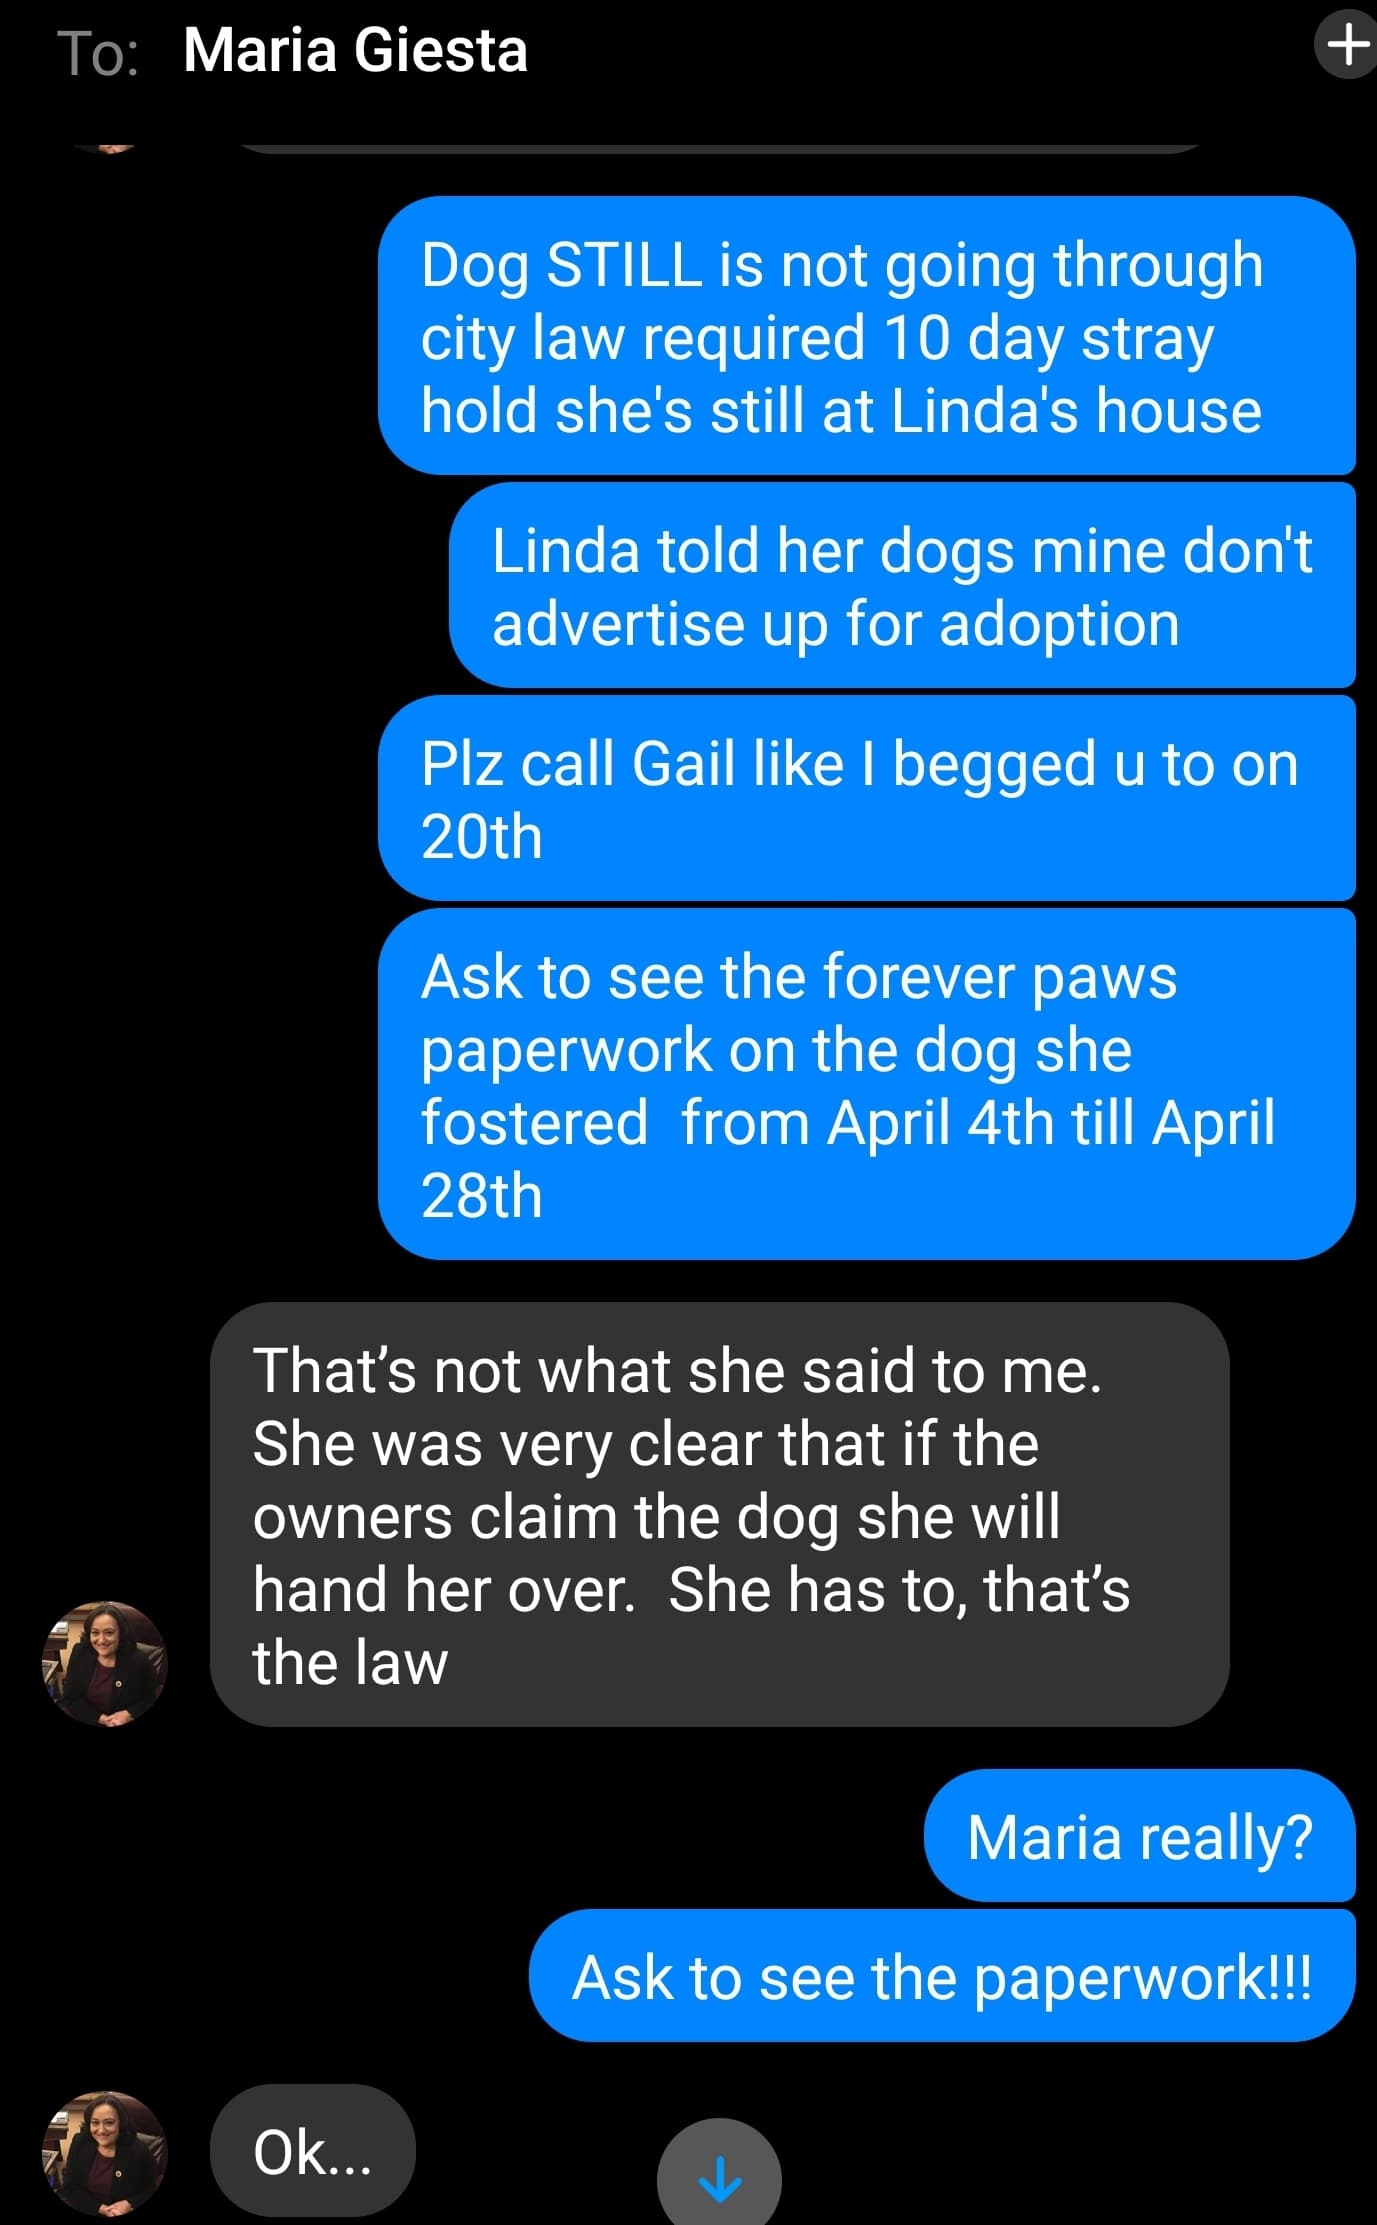 Ward 2 Councilor Maria Giesta tells me on April 25th if the owner of the dog came forward Linda would give the dog back. How could that happen if this was a private residence and nobody was publicly taking ownership of dog city nor shelter?